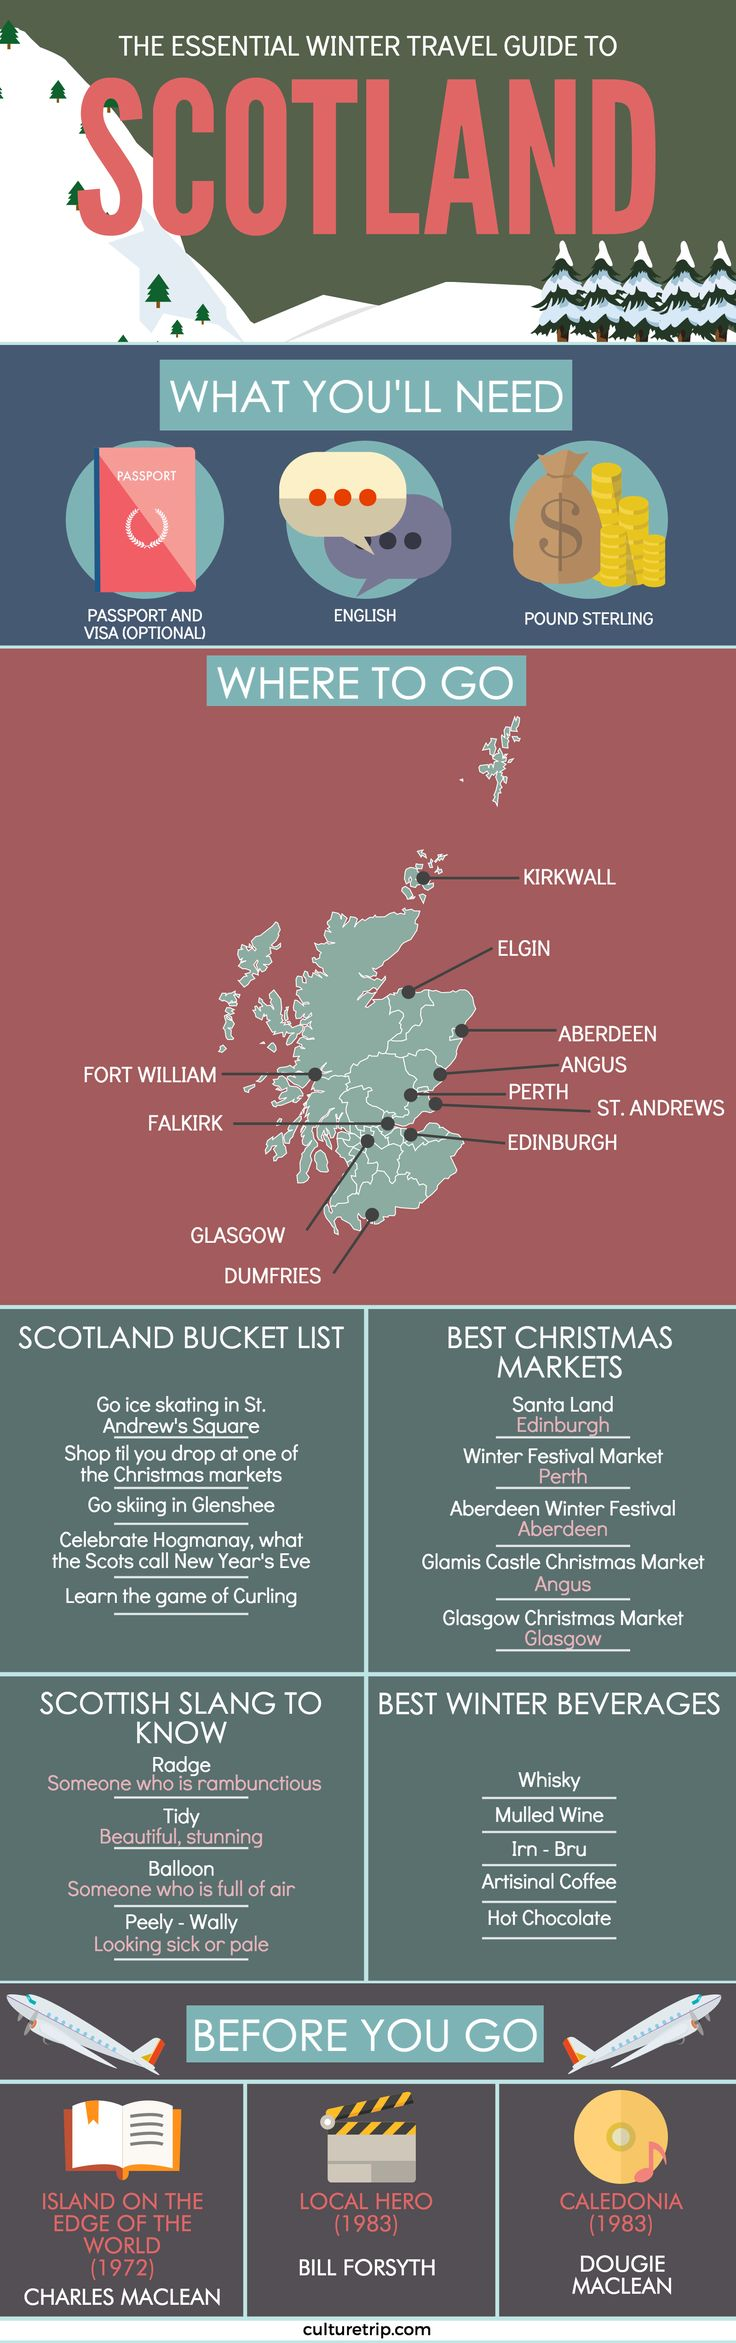 Pretty accurate! But a range is a nasty / mean person - Scotland Winter Travel Guide by the Culture Trip